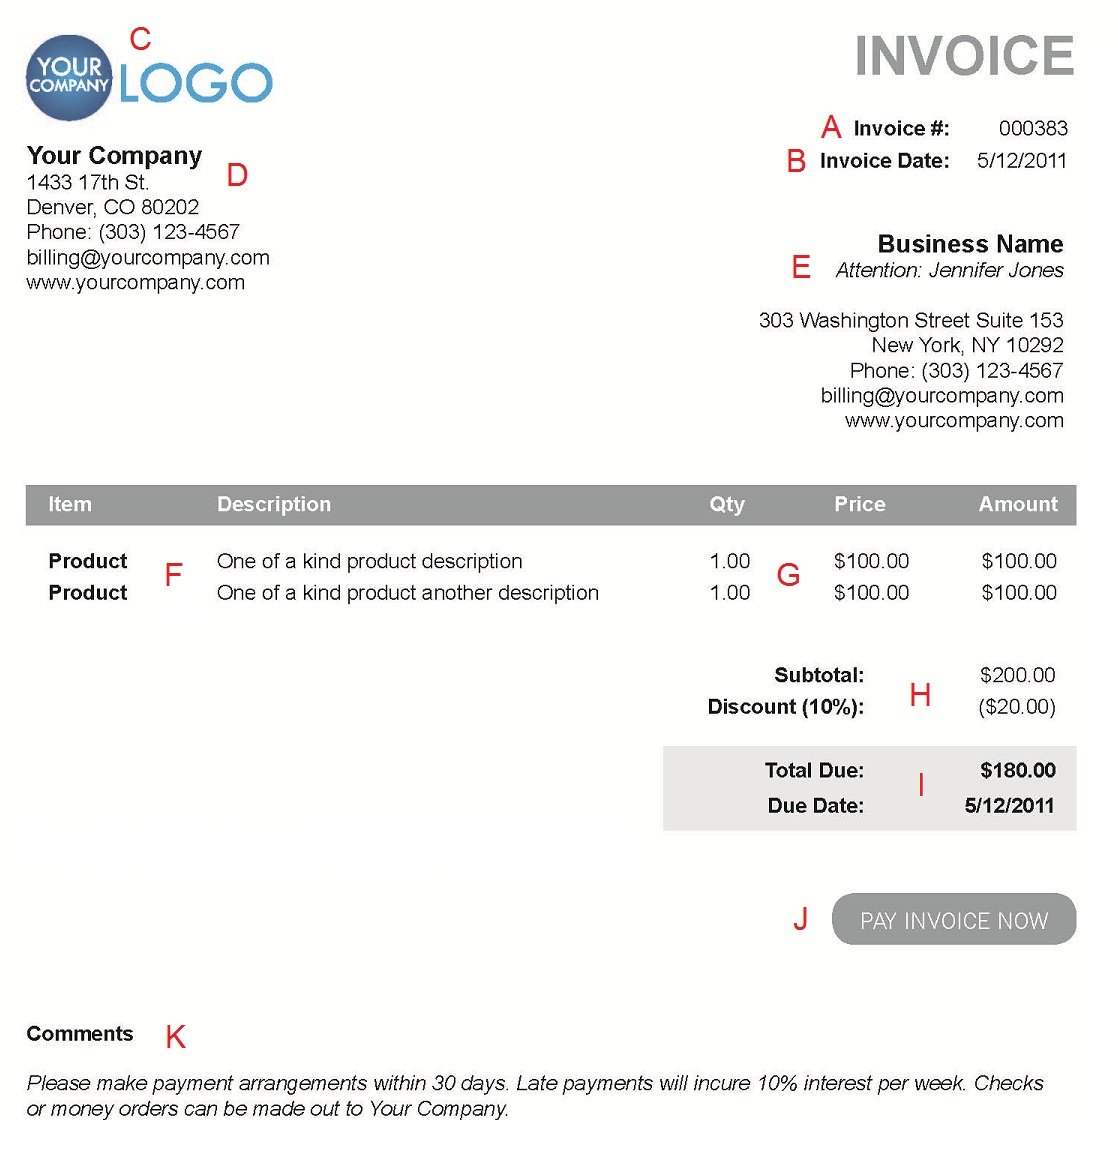 Opposenewapstandardsus  Inspiring The  Different Sections Of An Electronic Payment Invoice With Exciting A  With Appealing Dealer Invoices Also Invoices In Quickbooks In Addition Invoicing Solutions And Web Design Invoice Sample As Well As Design Invoices Additionally Web Based Invoice Software From Paysimplecom With Opposenewapstandardsus  Exciting The  Different Sections Of An Electronic Payment Invoice With Appealing A  And Inspiring Dealer Invoices Also Invoices In Quickbooks In Addition Invoicing Solutions From Paysimplecom